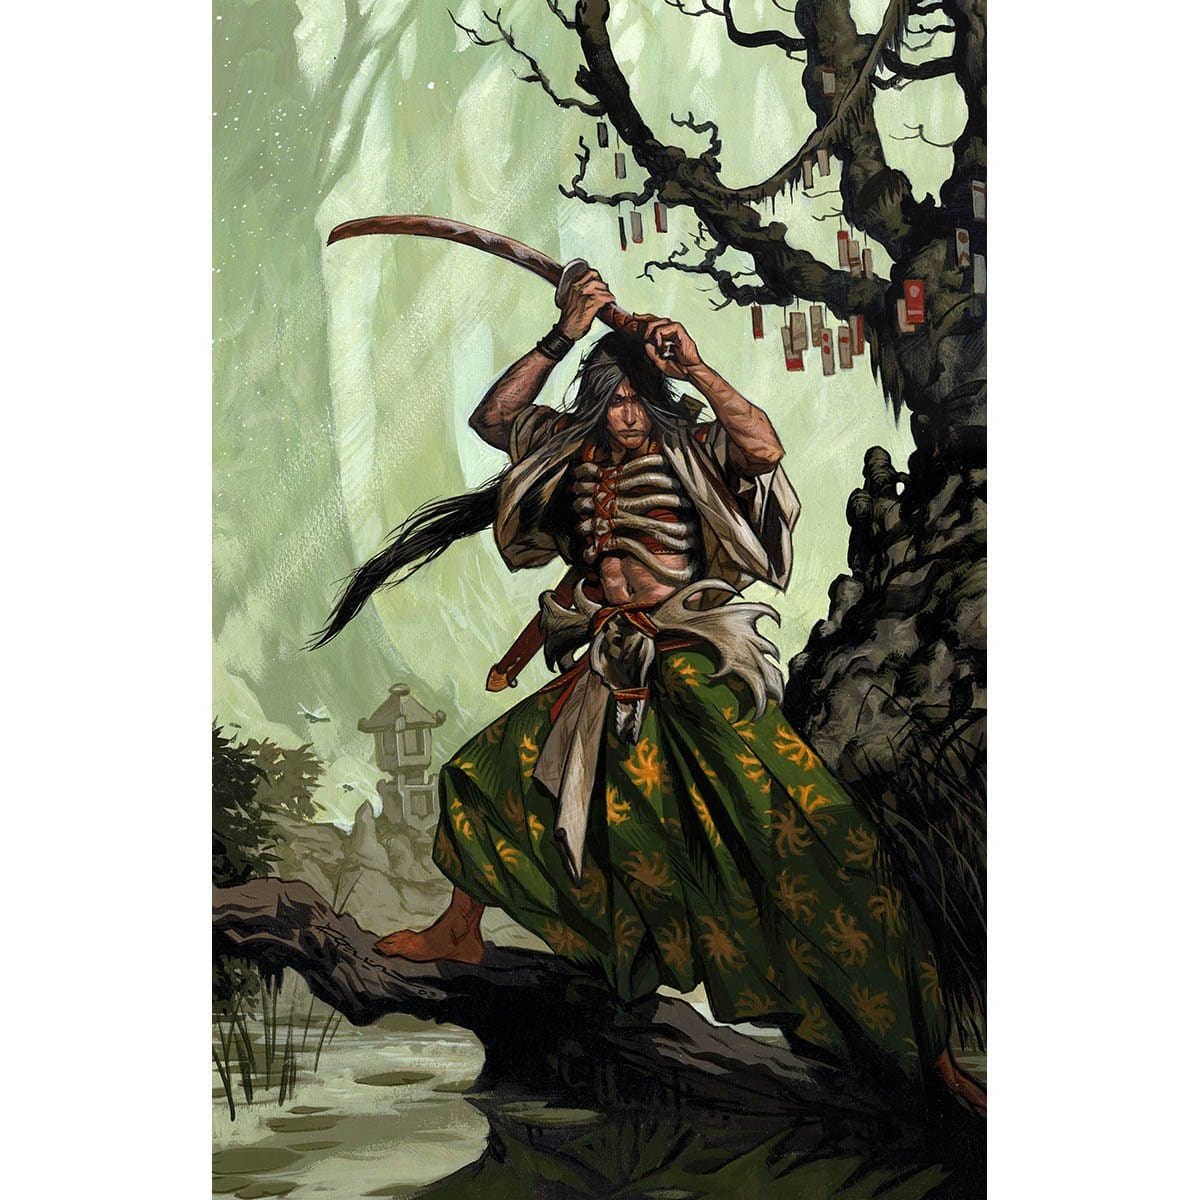 Isao, Enlightened Bushi Print - Print - Original Magic Art - Accessories for Magic the Gathering and other card games